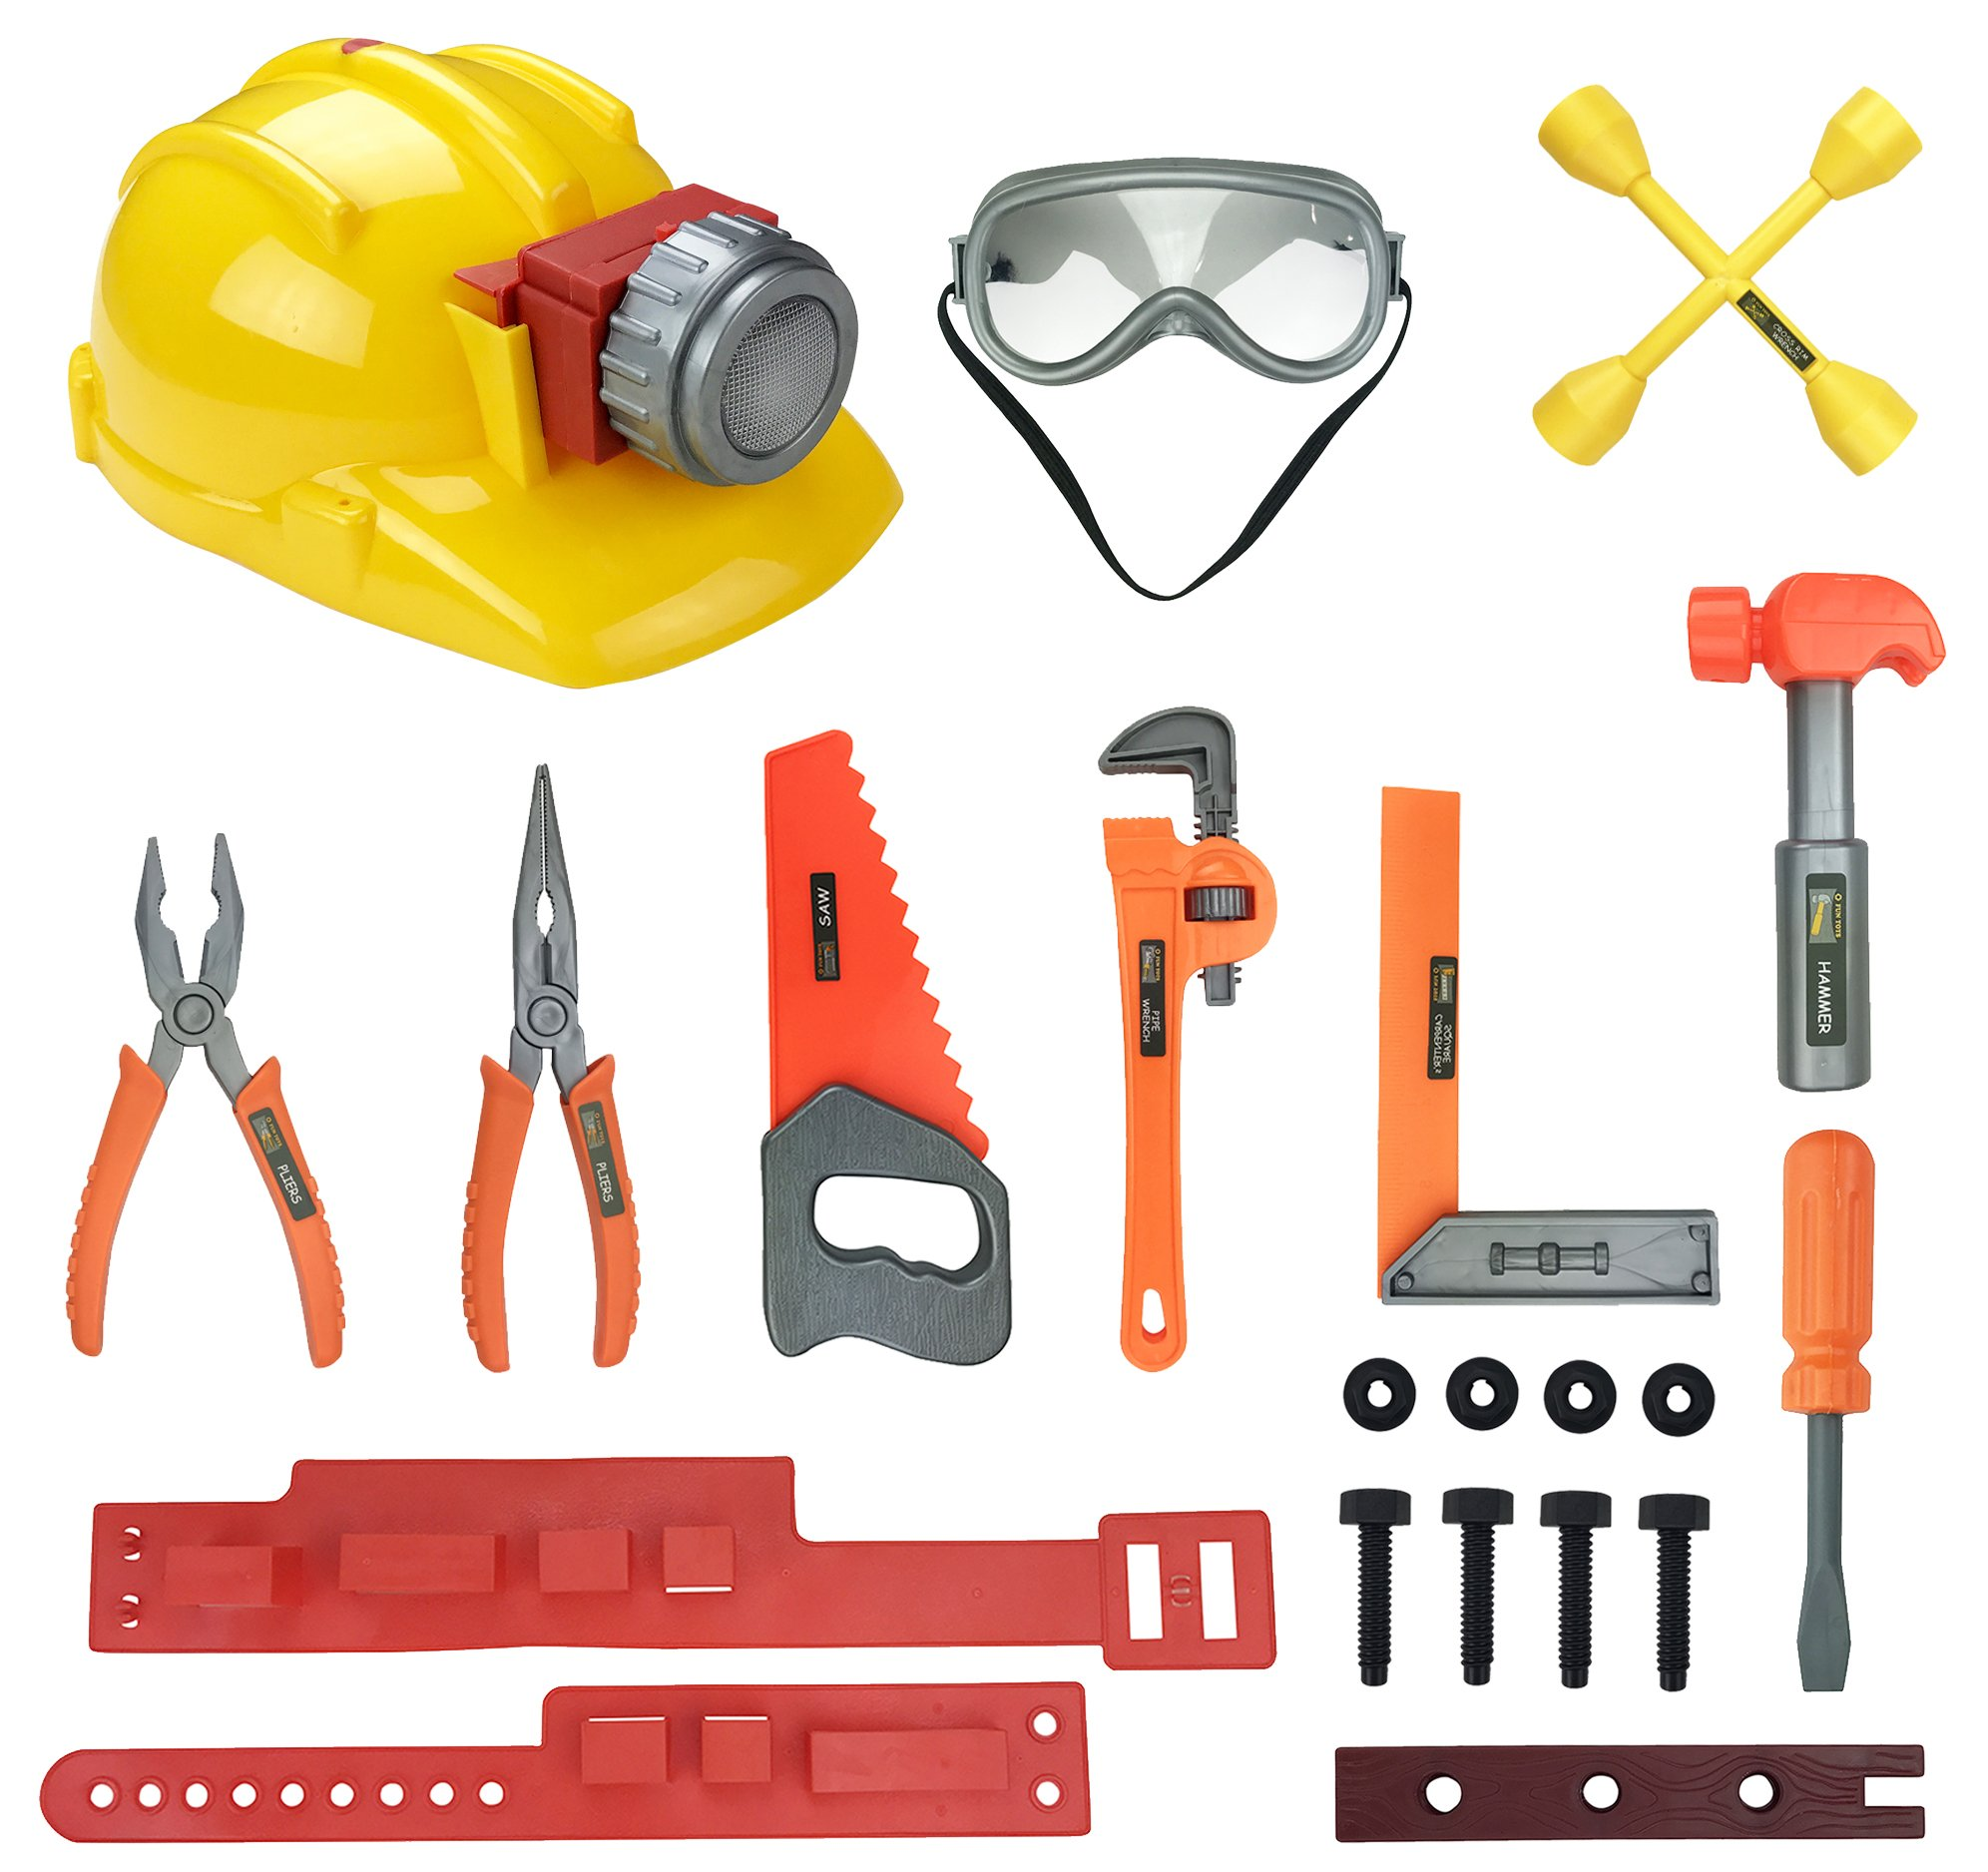 Little Handyman Kids Pretend Play Tools Playset - Construction Tool Belt with Light Up Hard Hat, Safety Goggles and Accessories - STEM Building Toys for 3, 4, 5, 6 Year Old Boys, Girls by Liberty Imports